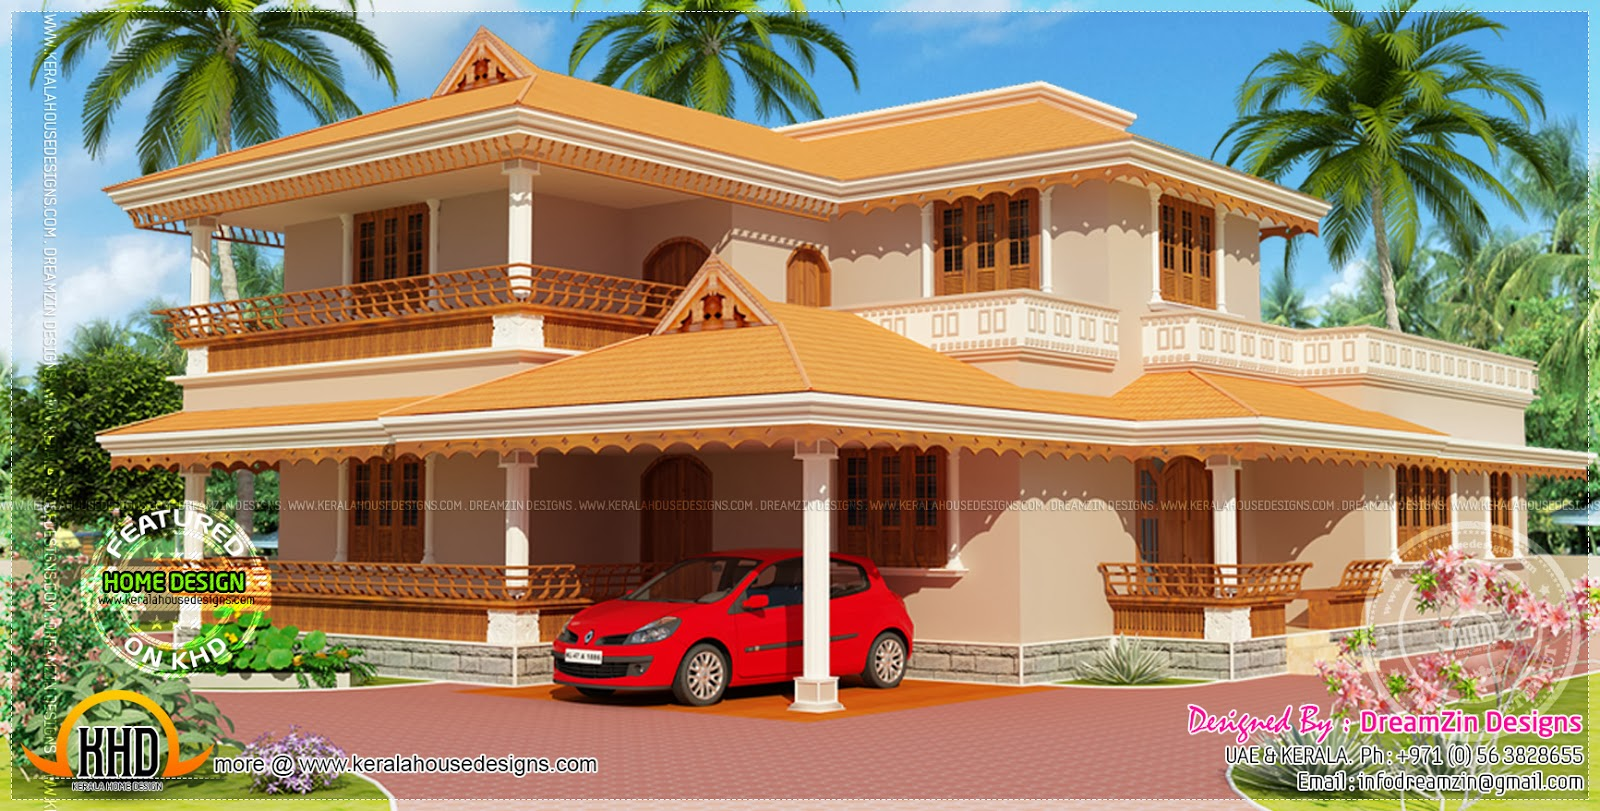 Compound House Designs : House with compound wall design kerala home and